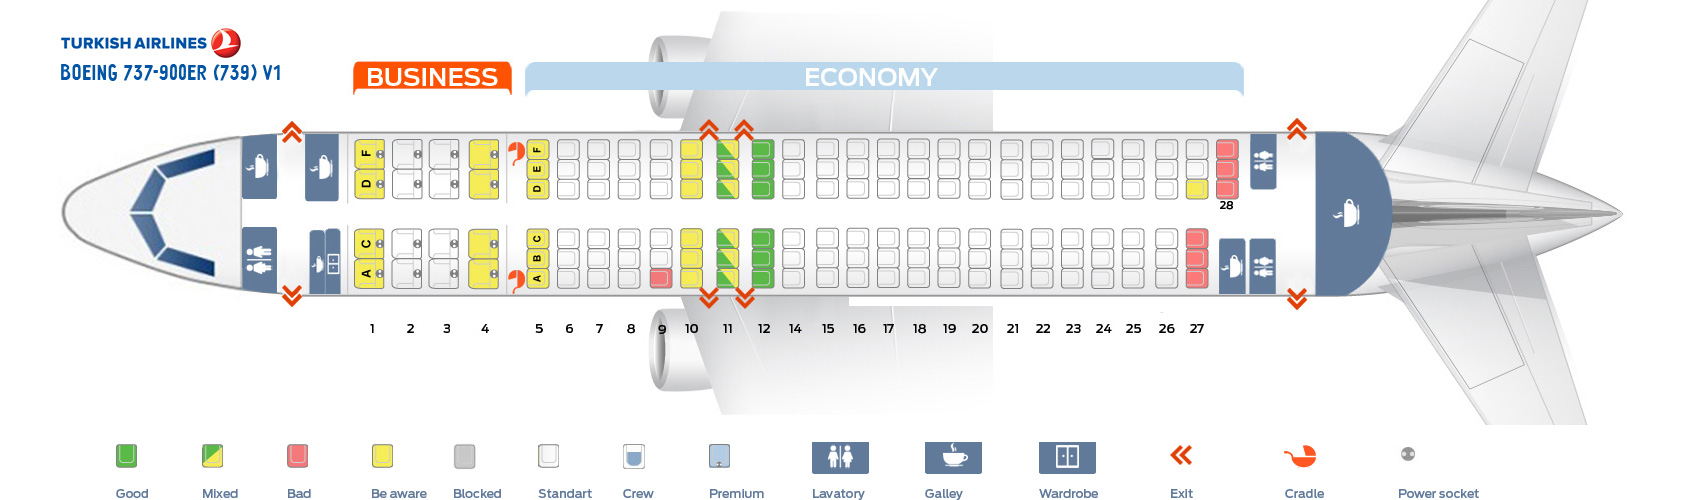 Seat Map Boeing 737-900ER V1 Turkish Airlines